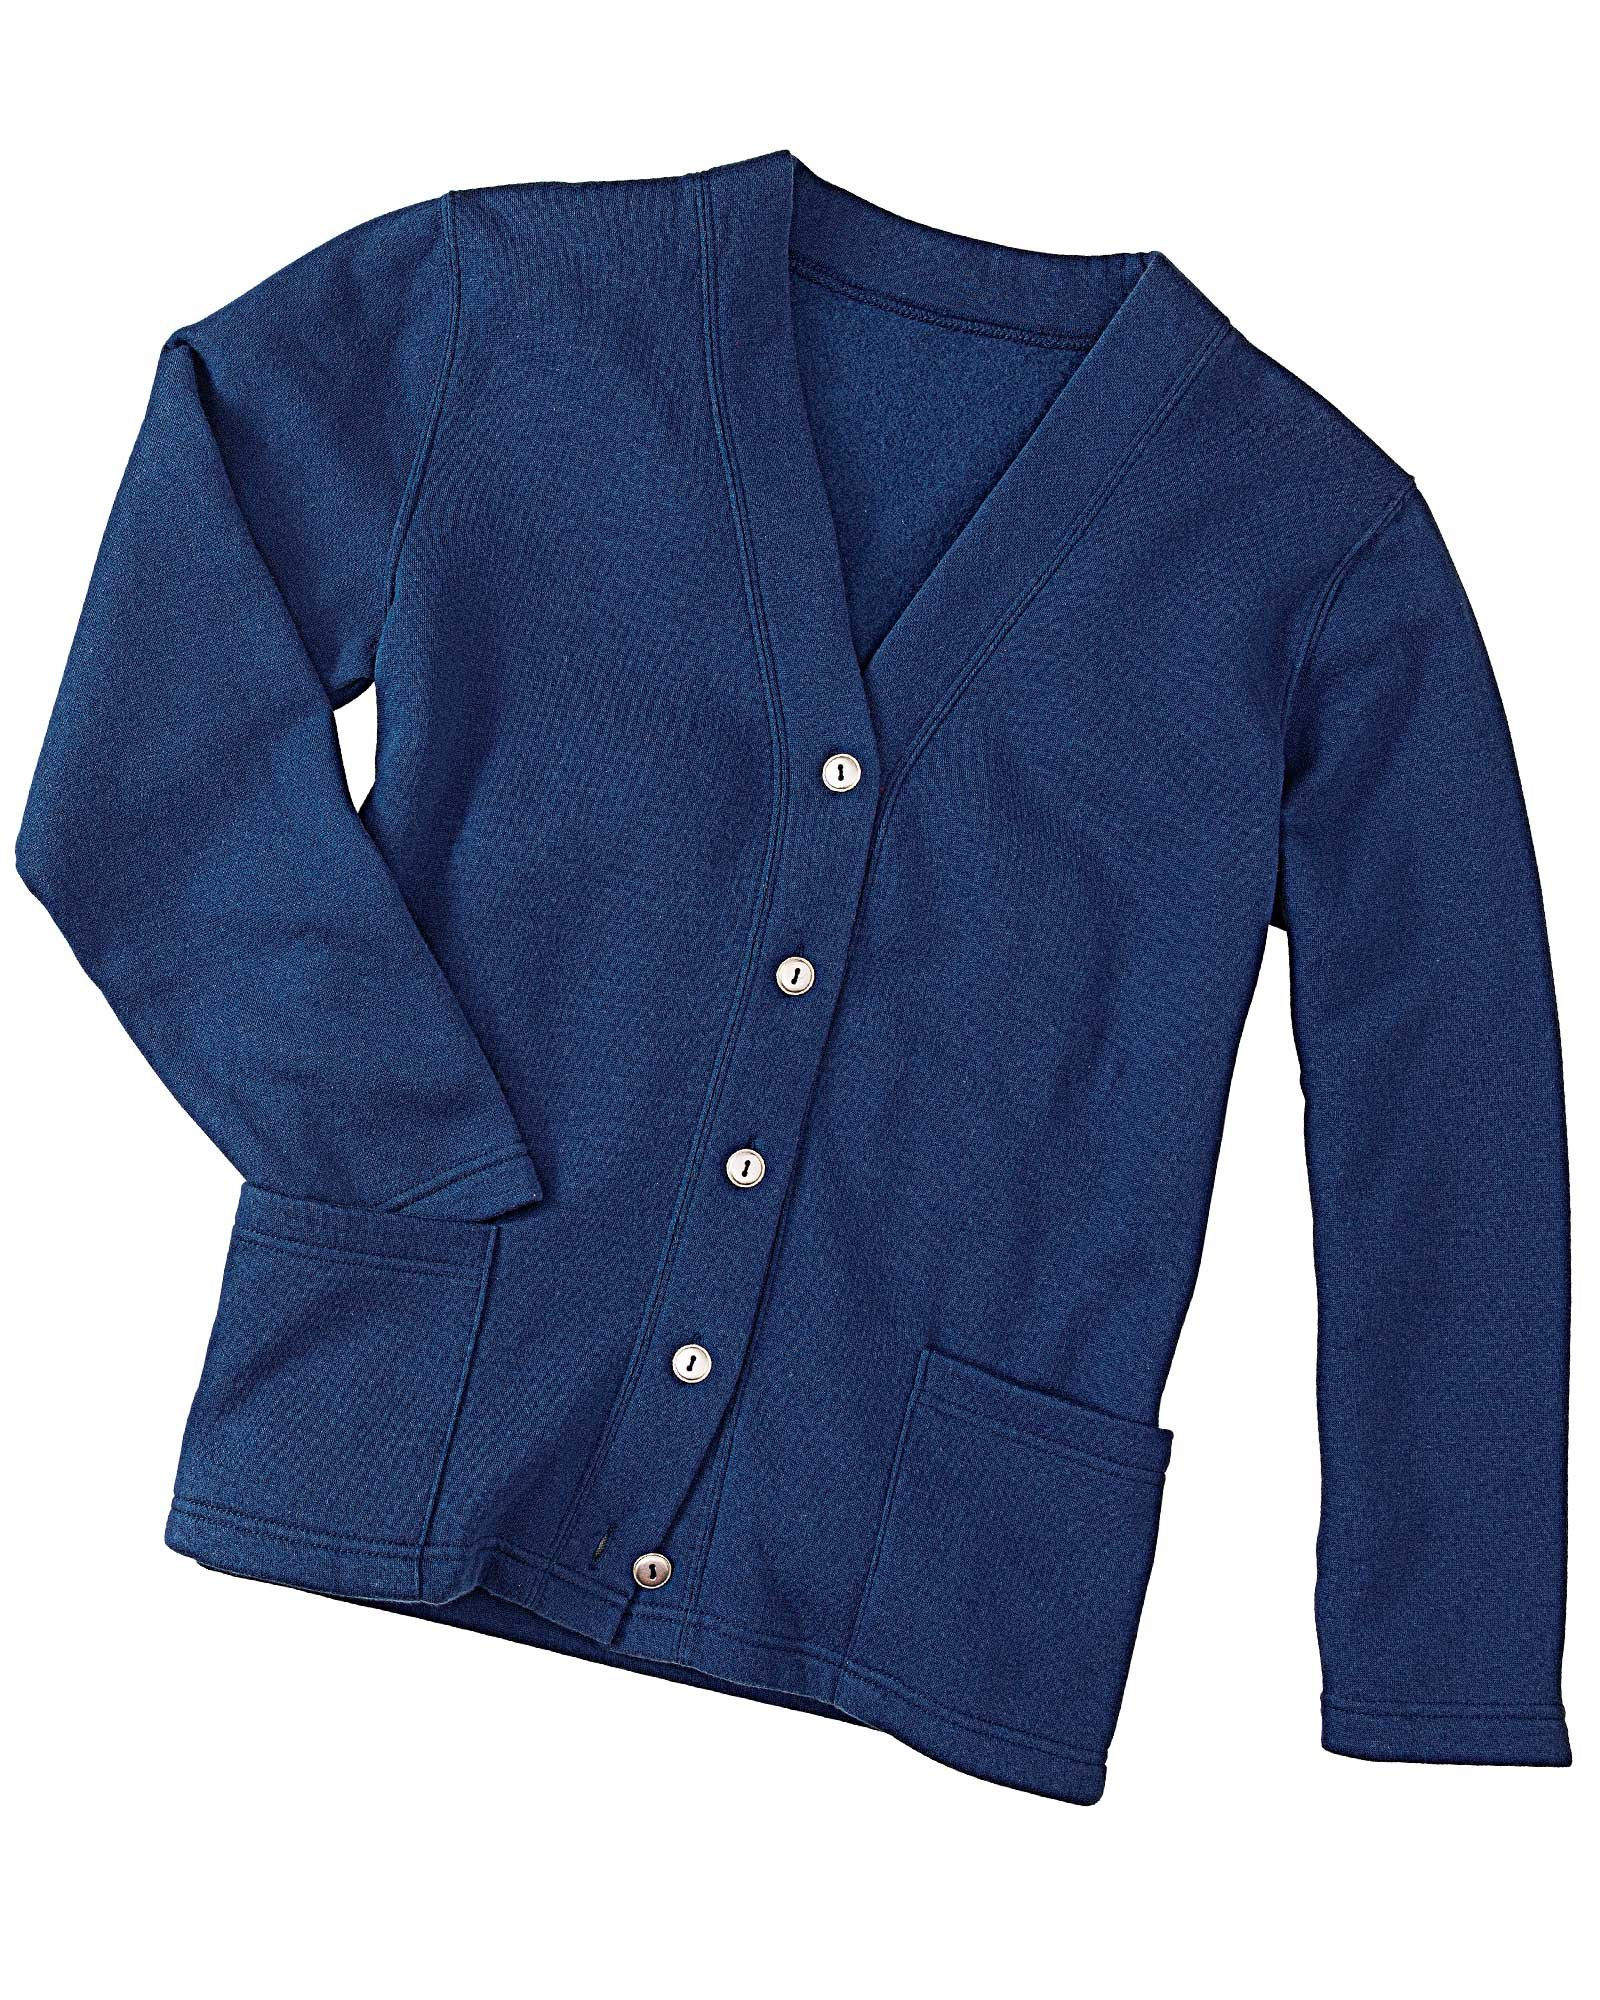 National Fleece Cardigan, Navy, 2X